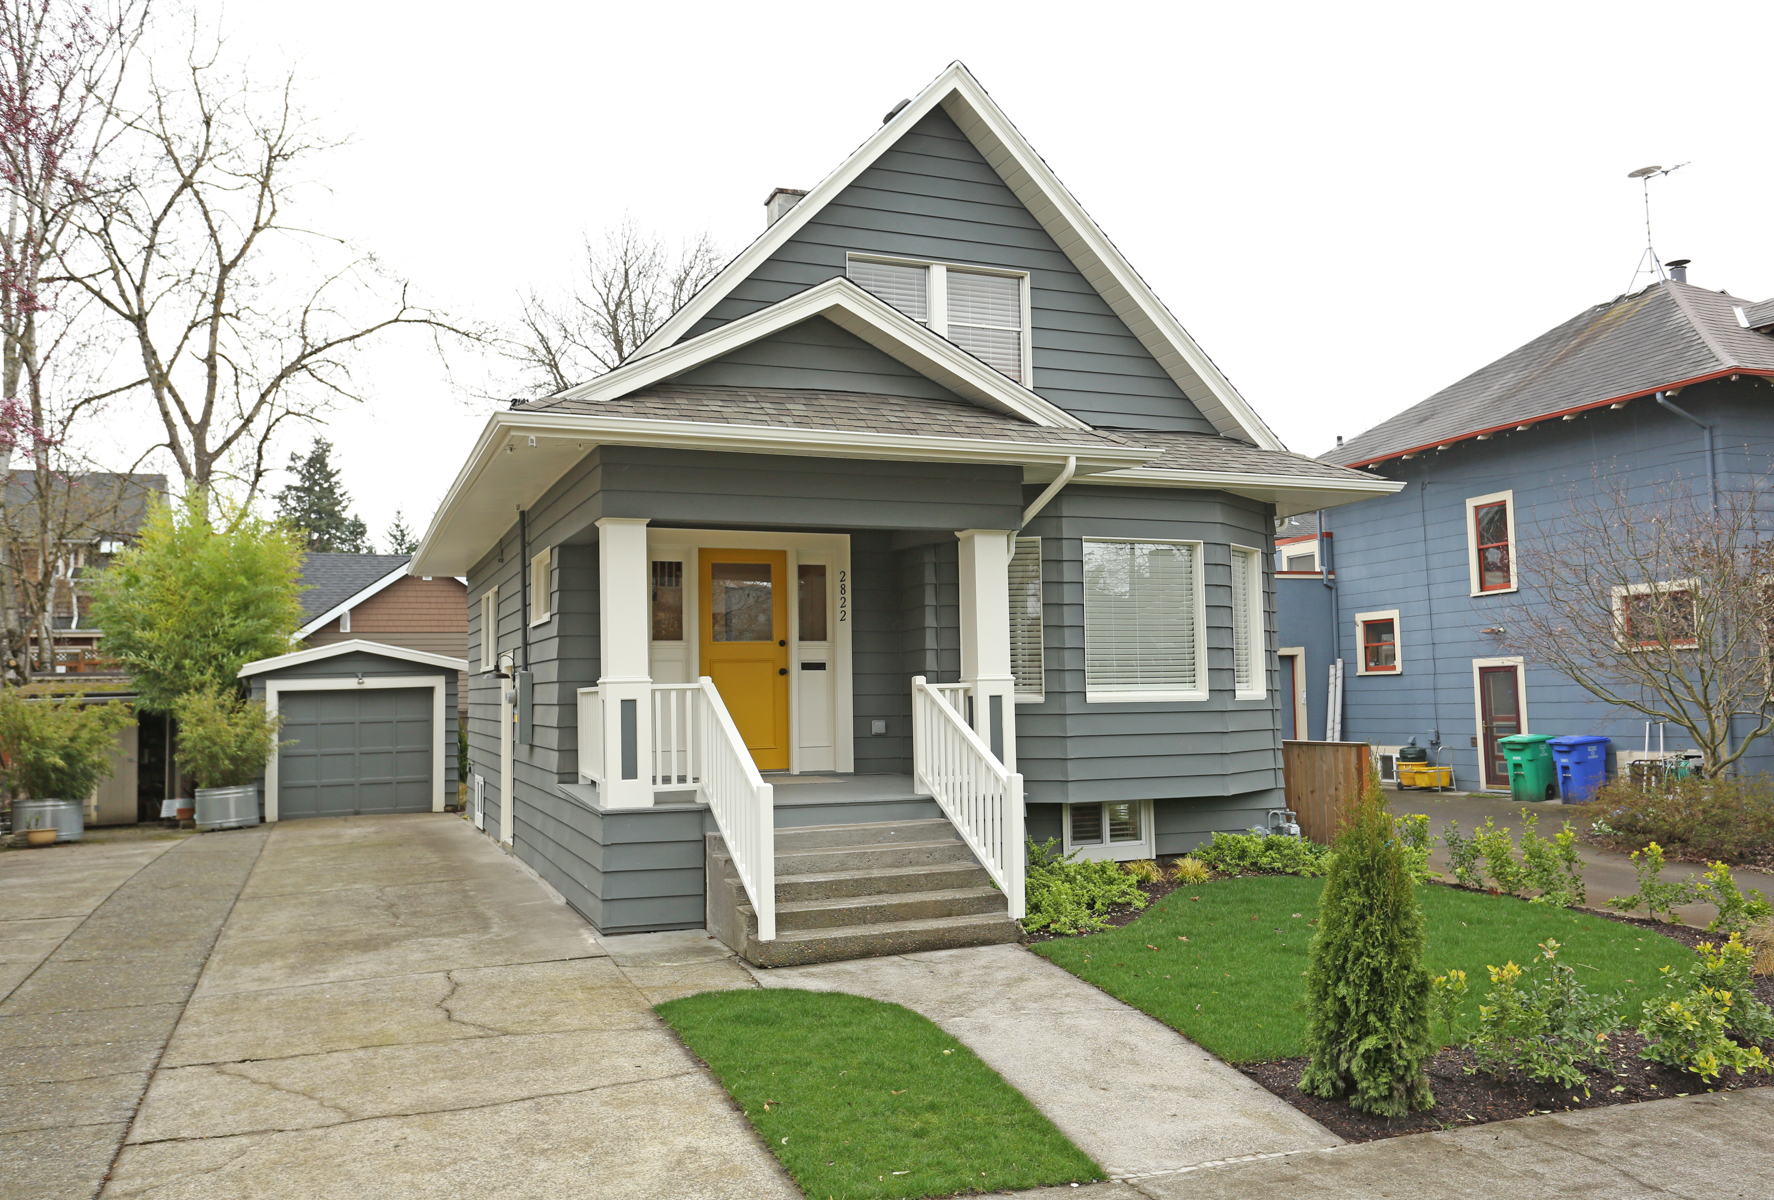 2822 SE 36th Ave.  Remodeled bungalow off Division  $679,000  SOLD for $690,000.